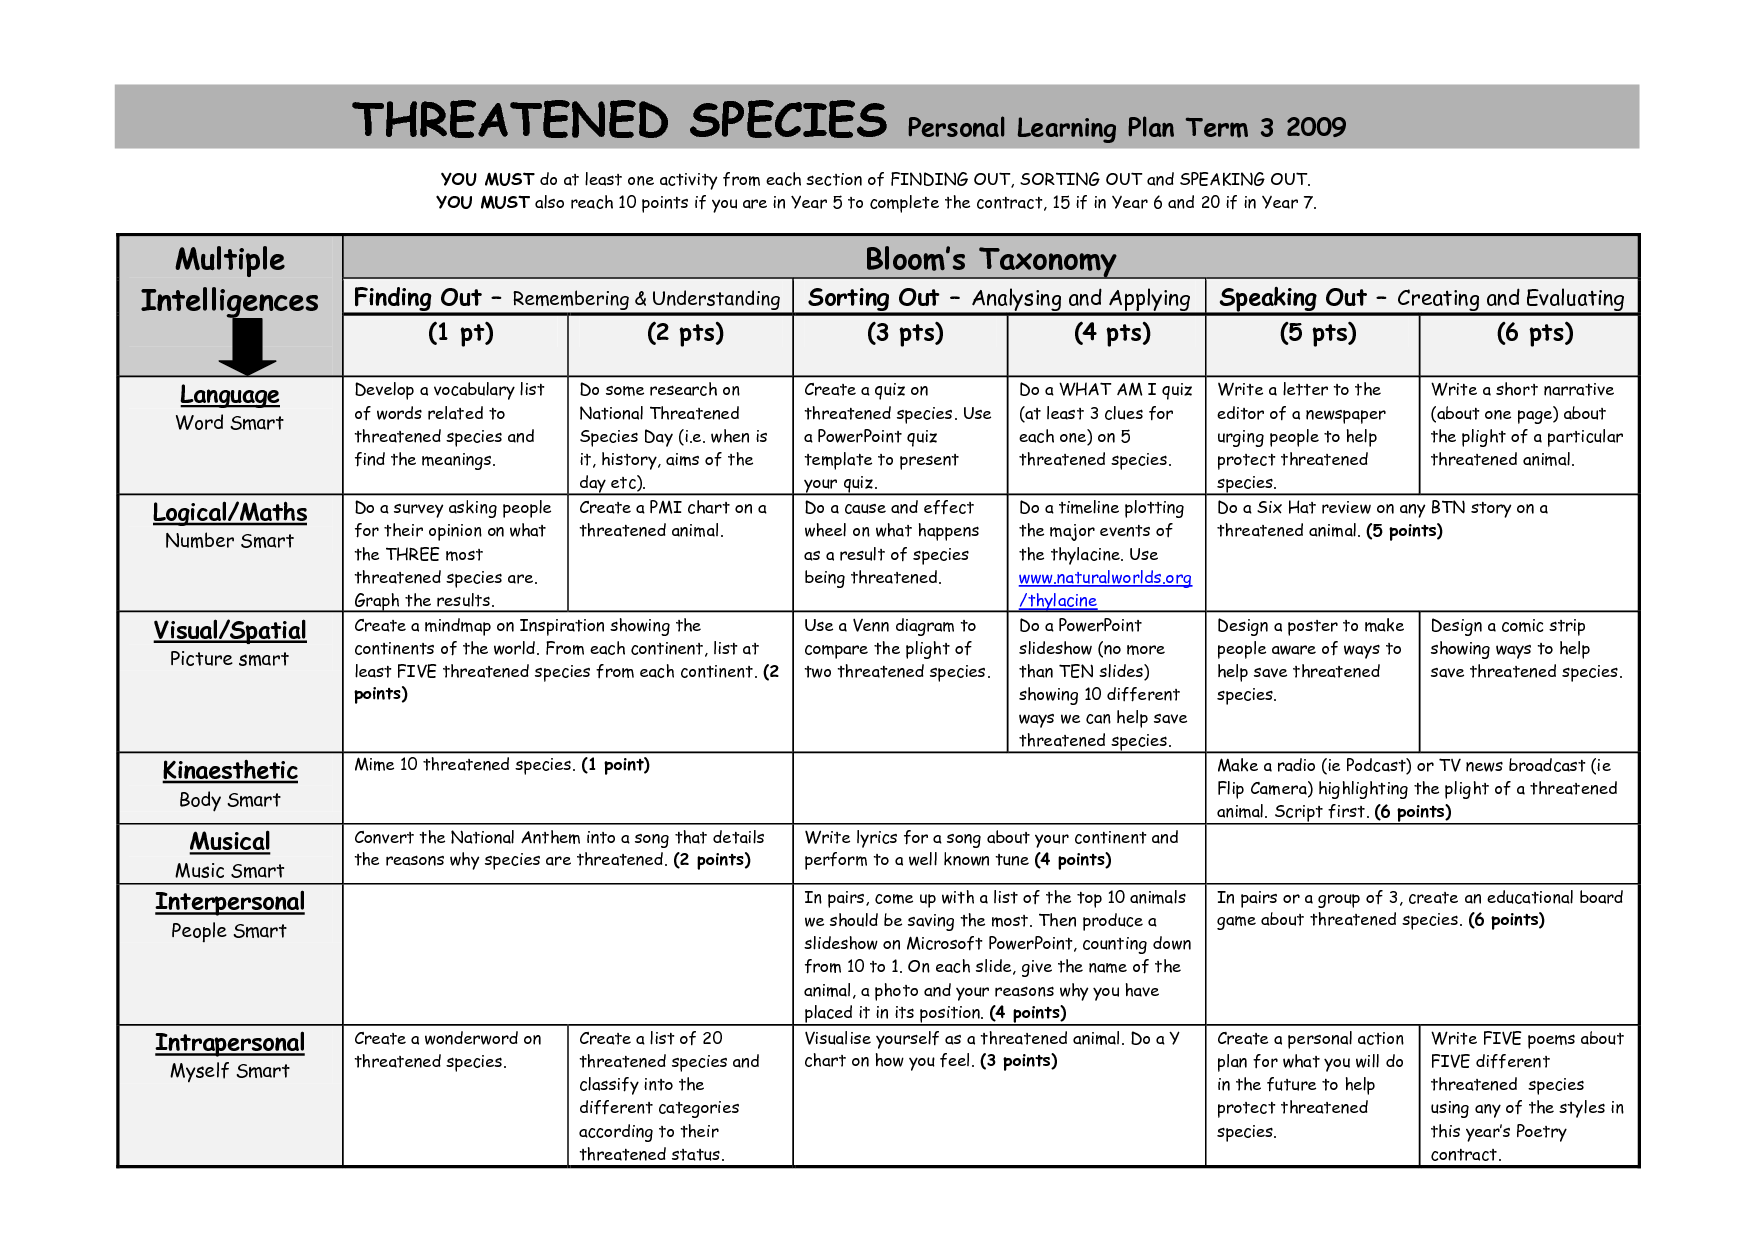 A Sample Assignment Grid Combining Multiple Intelligences